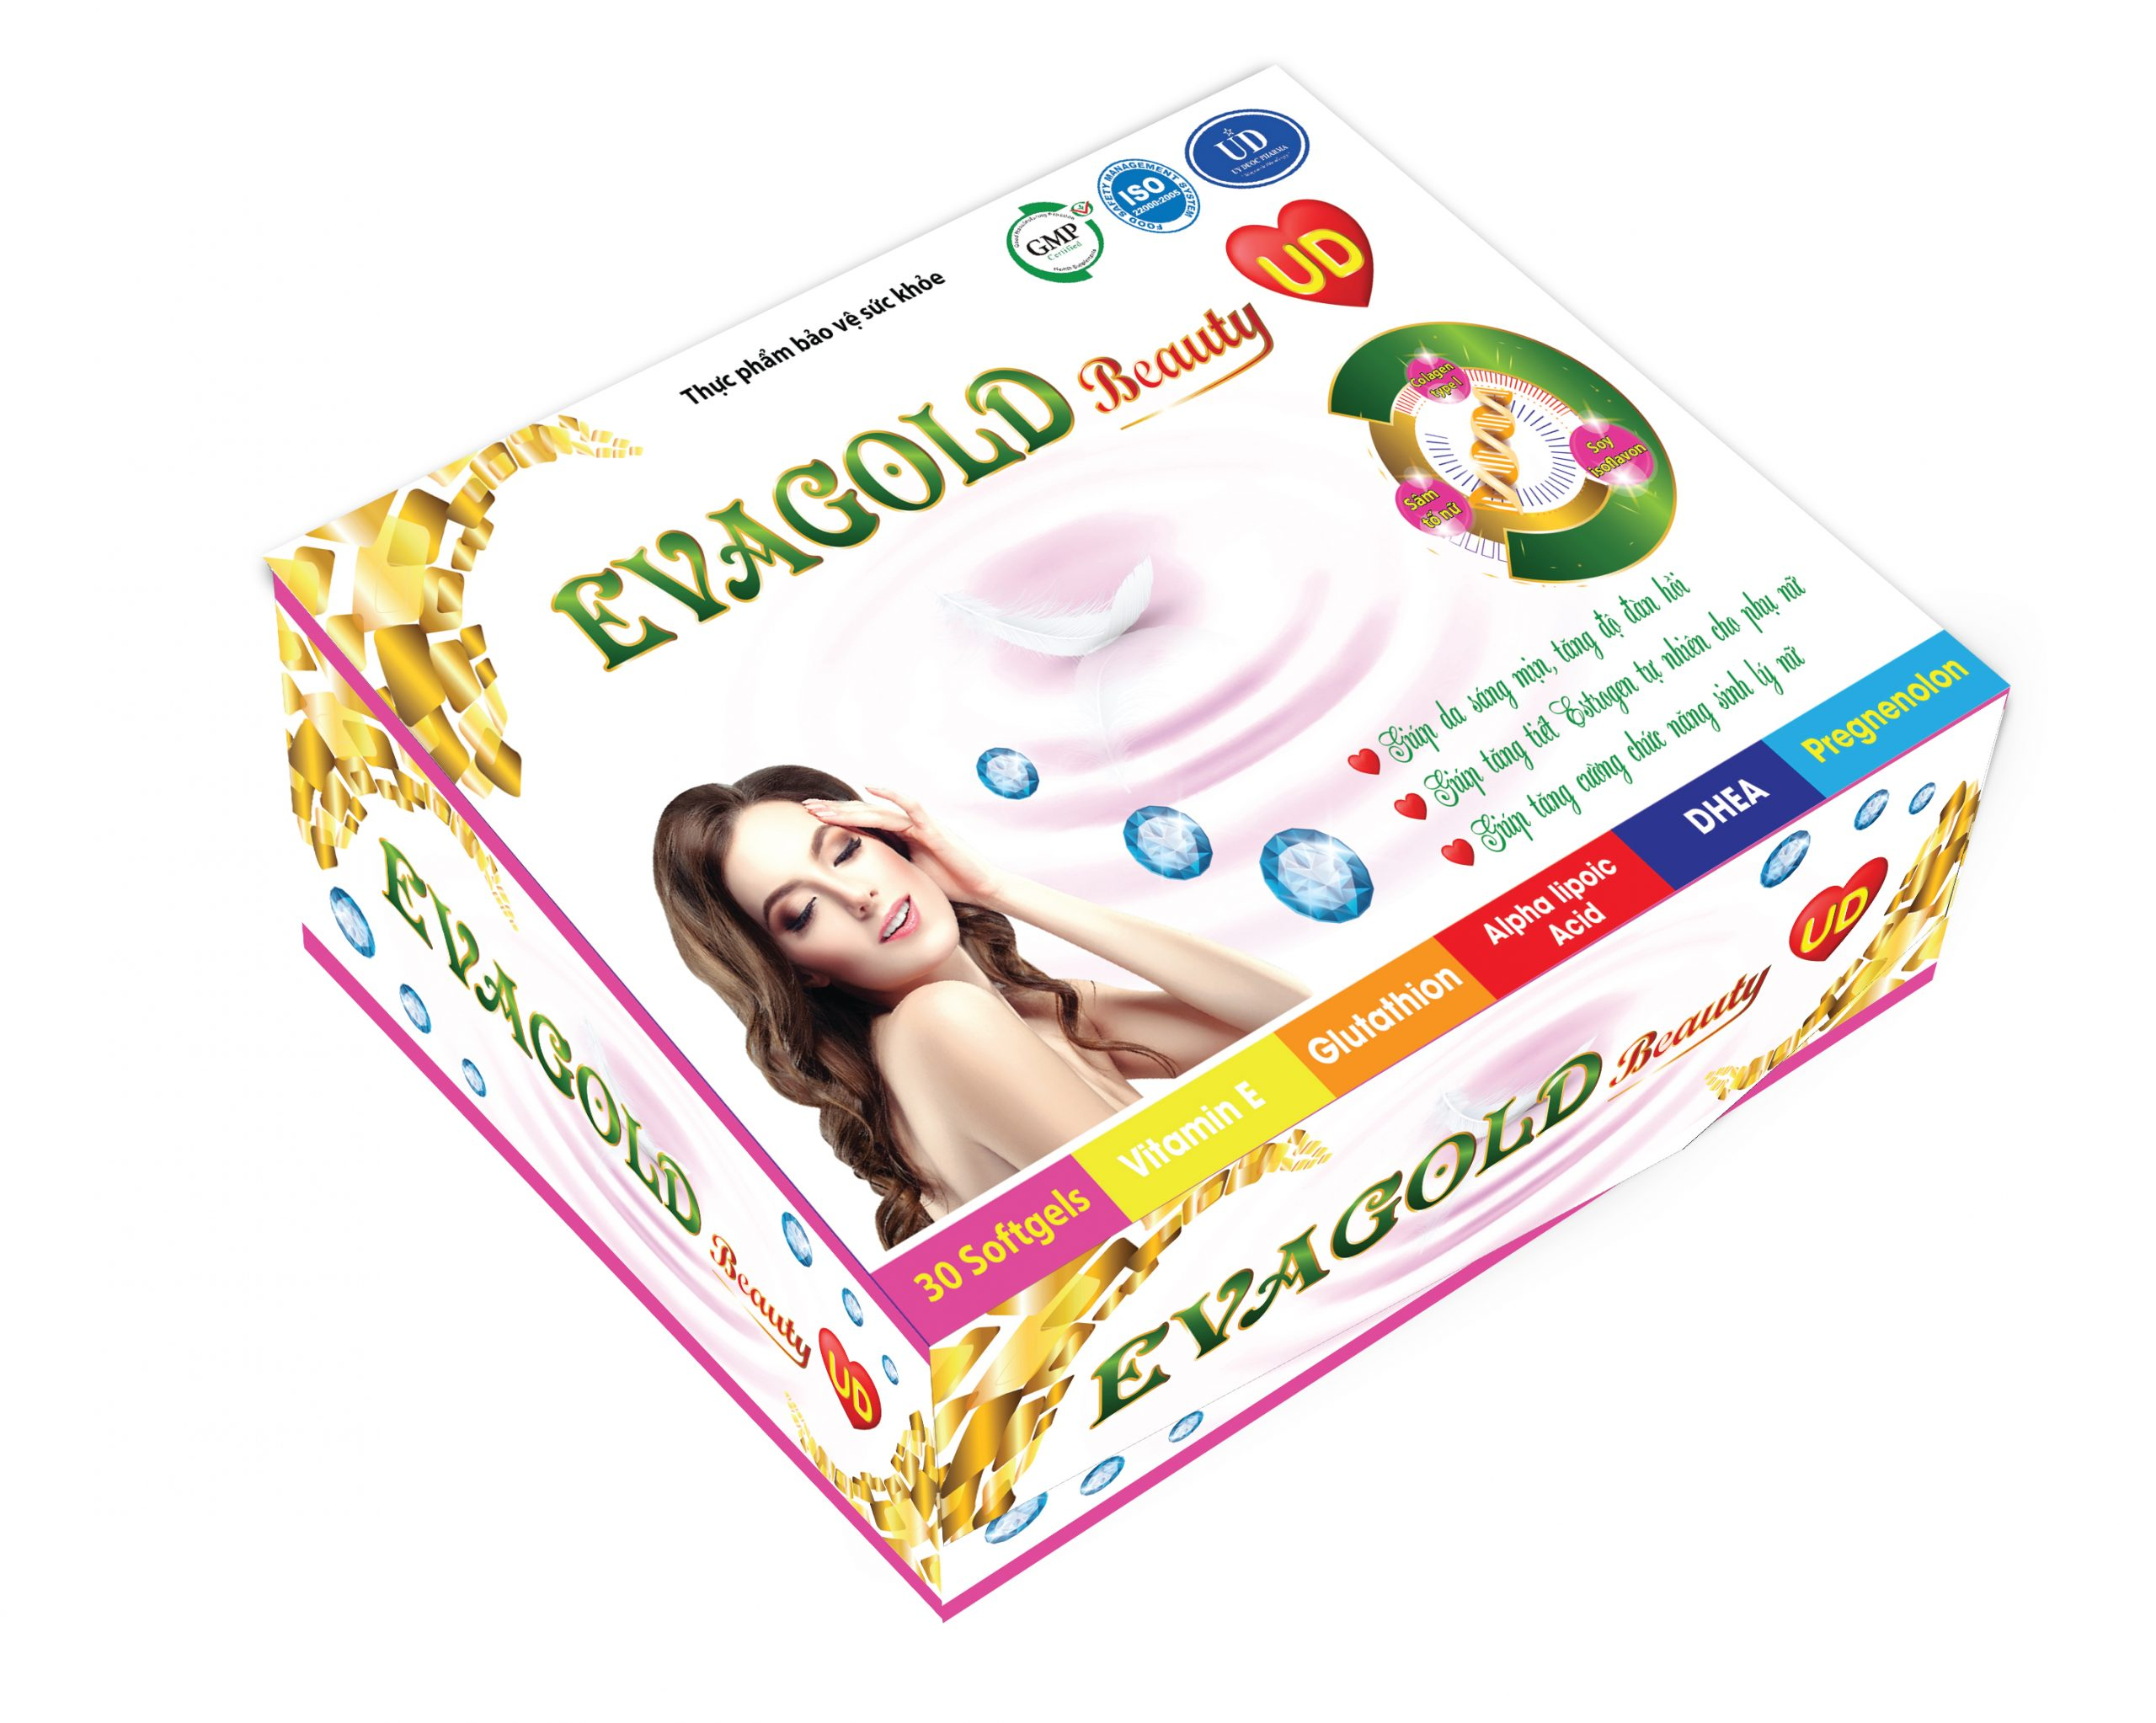 Evagold beauty ud-01-02-01-02-03-03-03-03-03-03-02-01-02-01-01-02-02